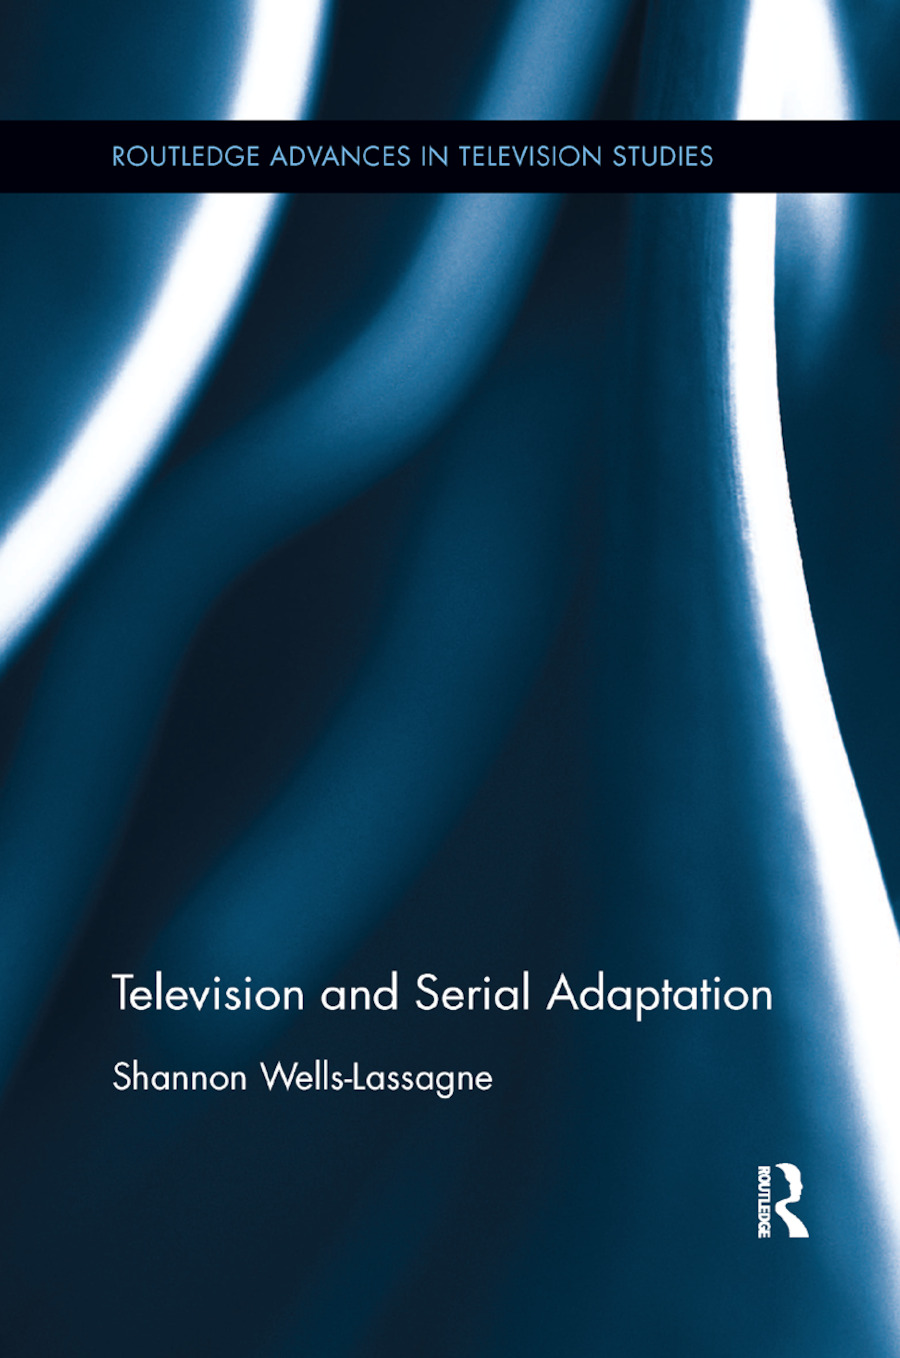 Television and Serial Adaptation book cover